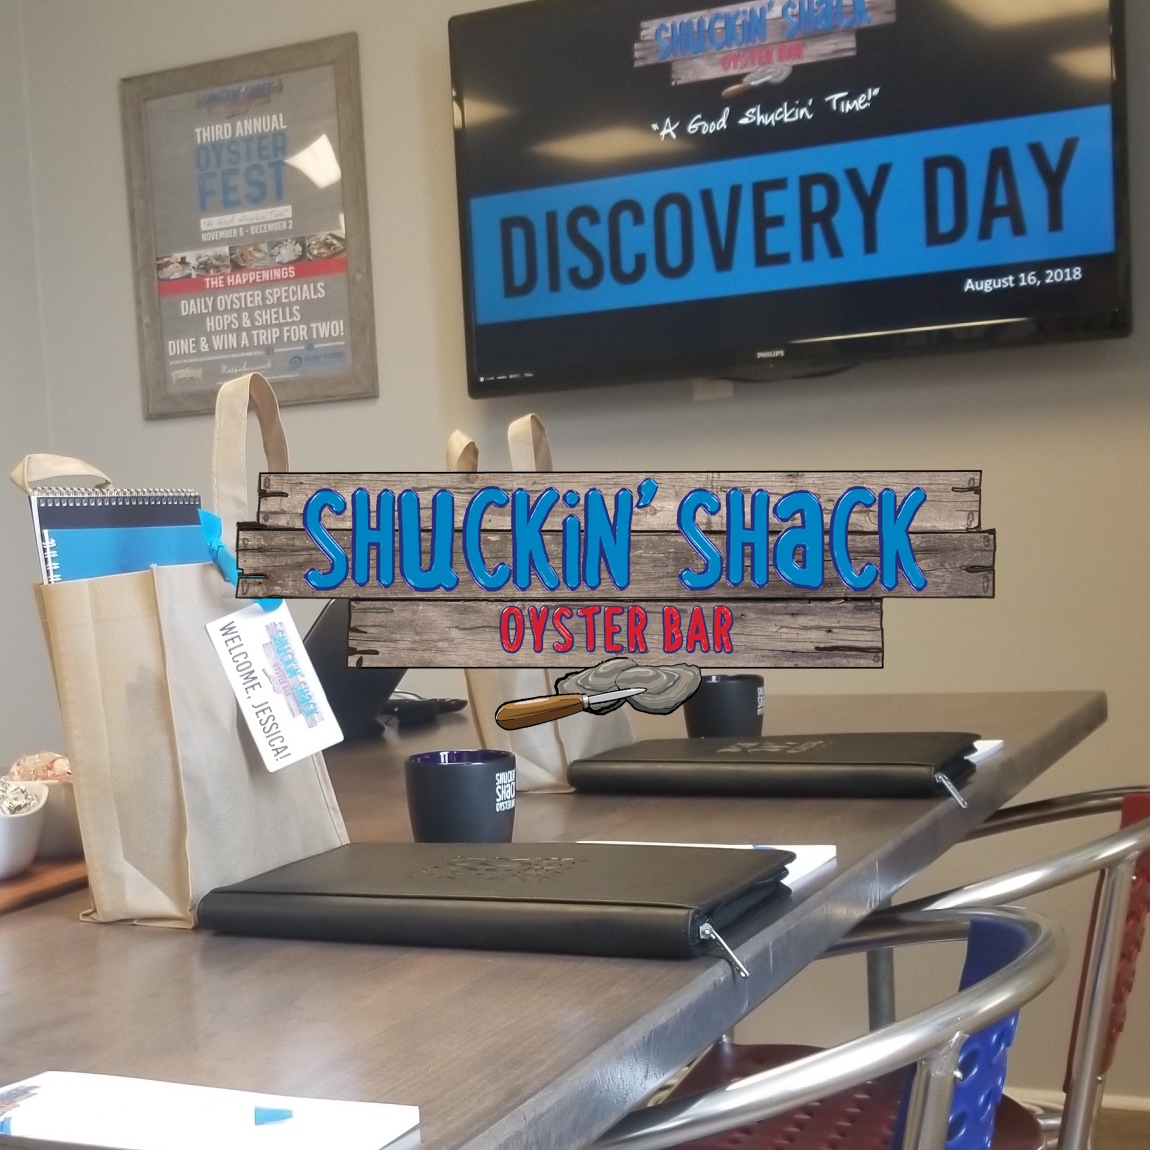 Our largest Shuckin' Shack Restaurant Franchise Discovery Day to date is happening this week!